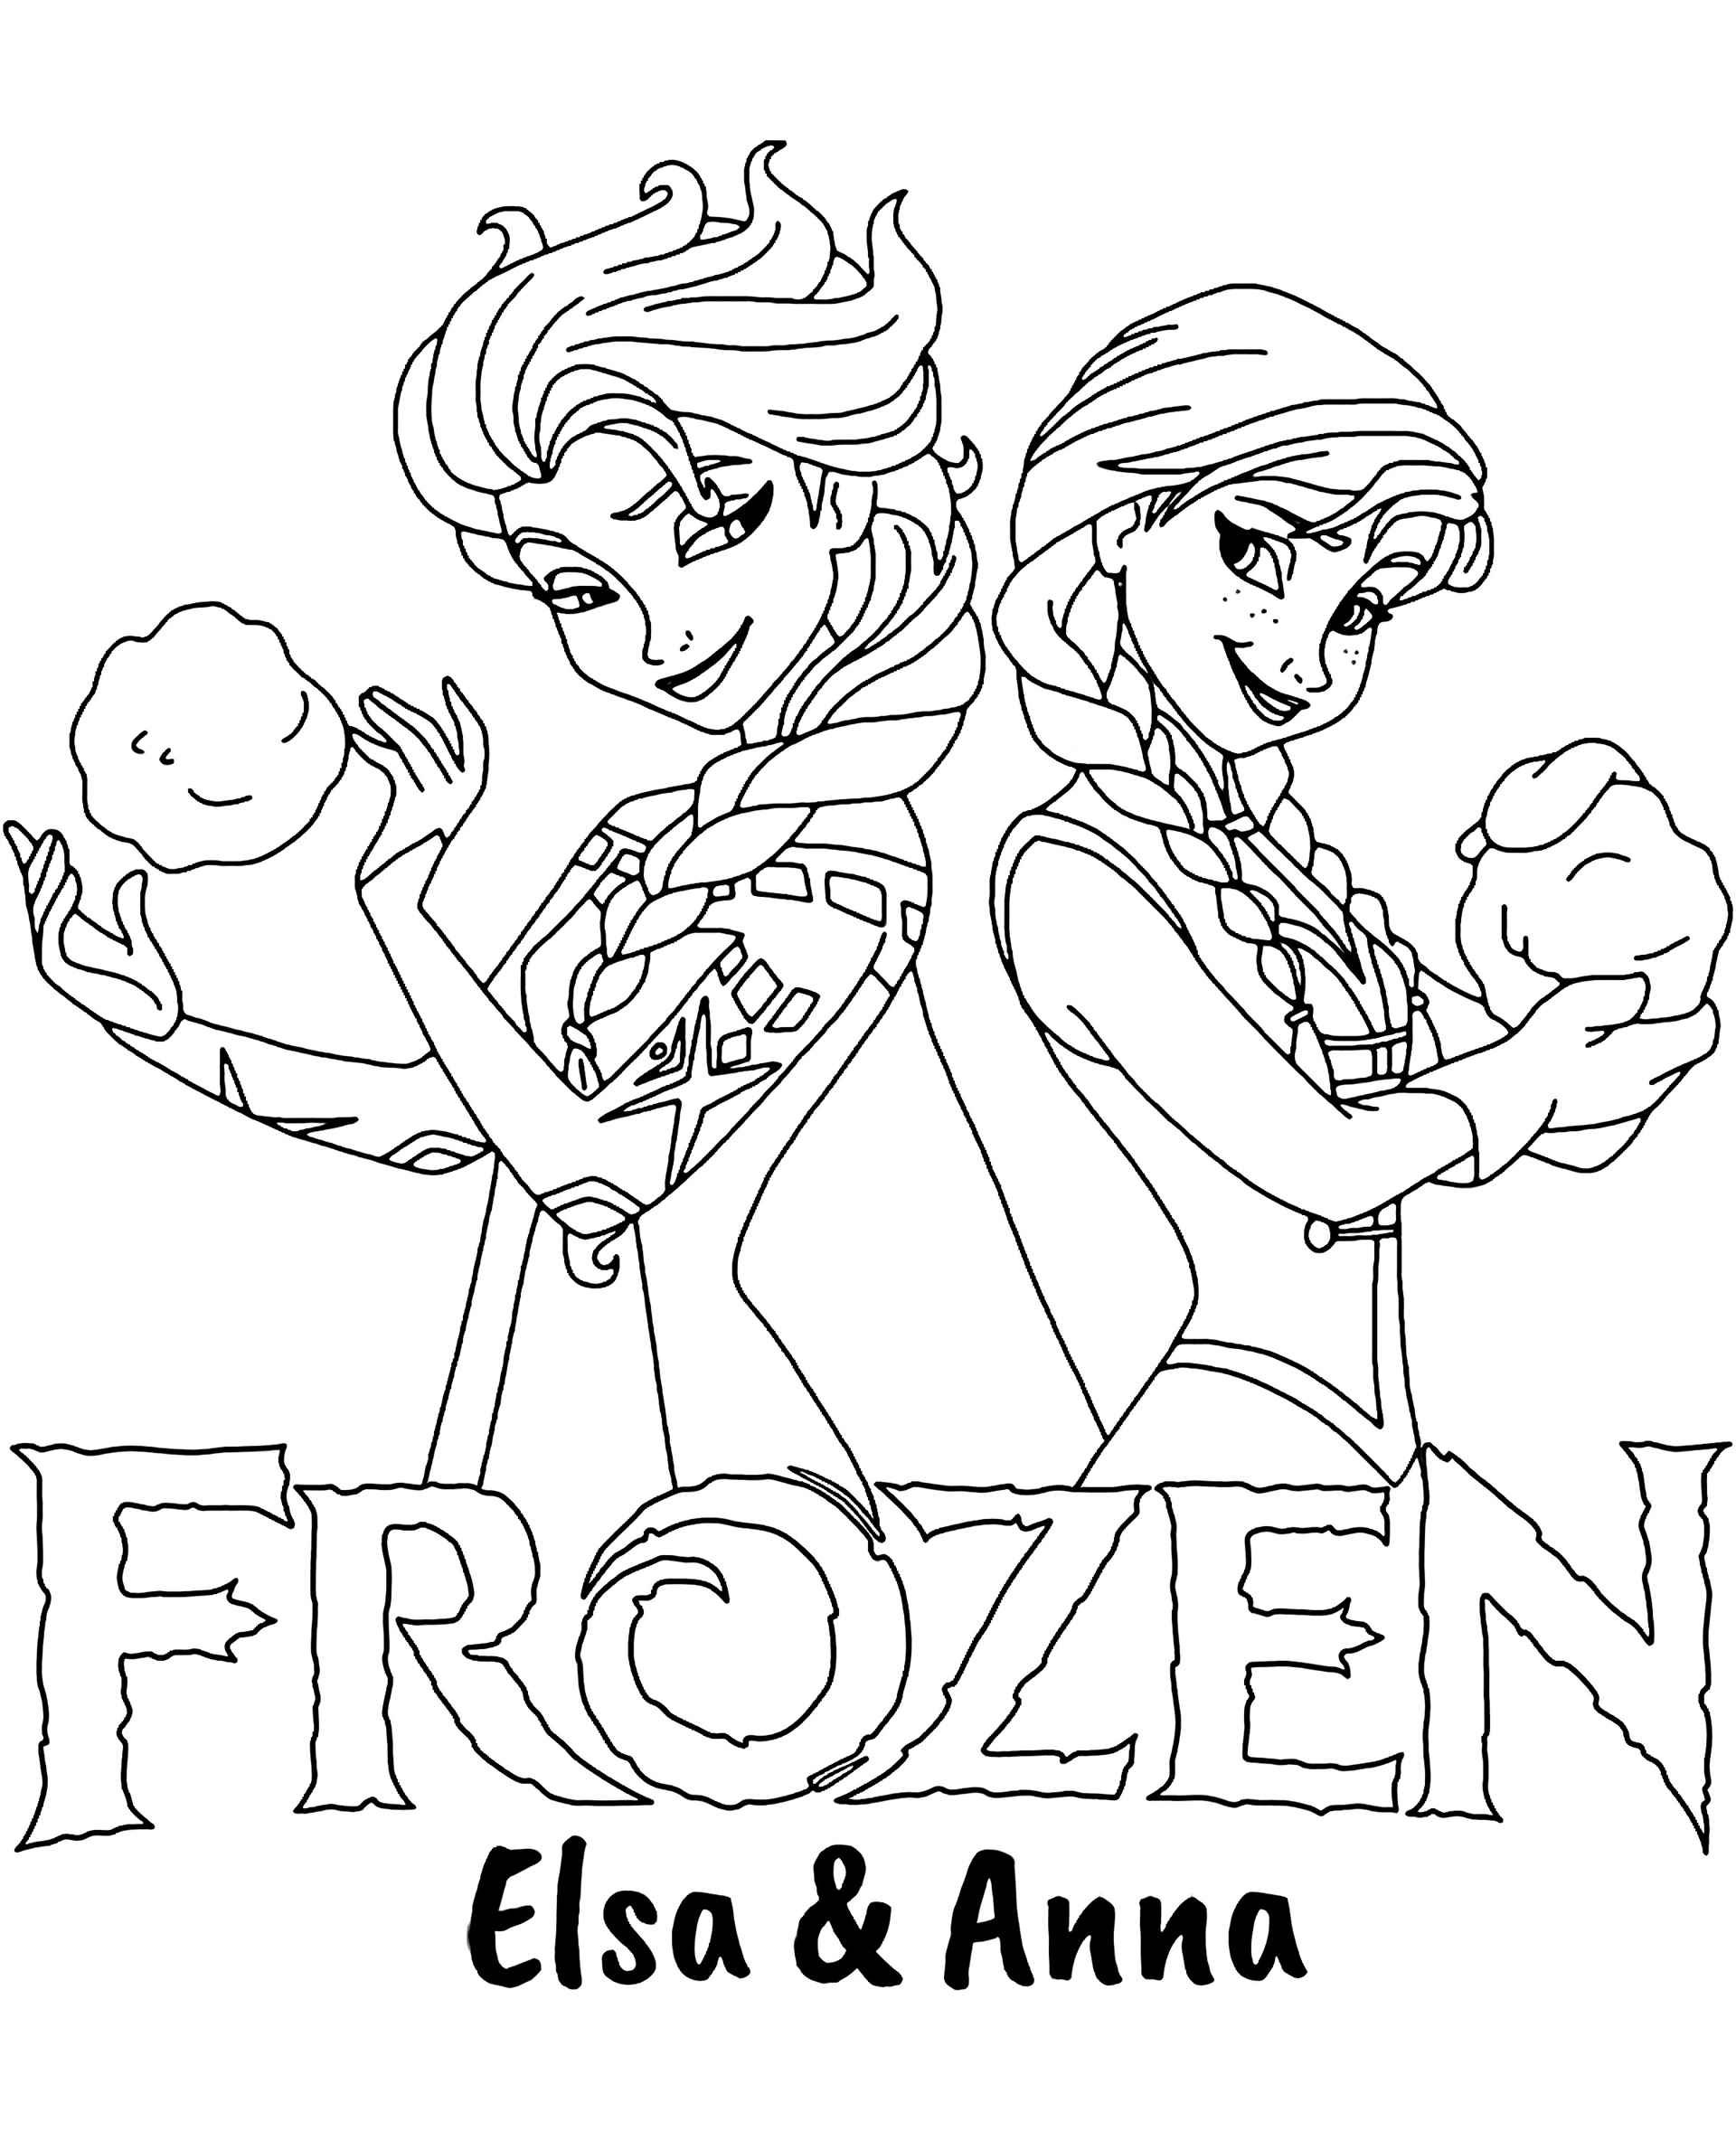 Elsa And Anna Frozen Logo Coloring Page